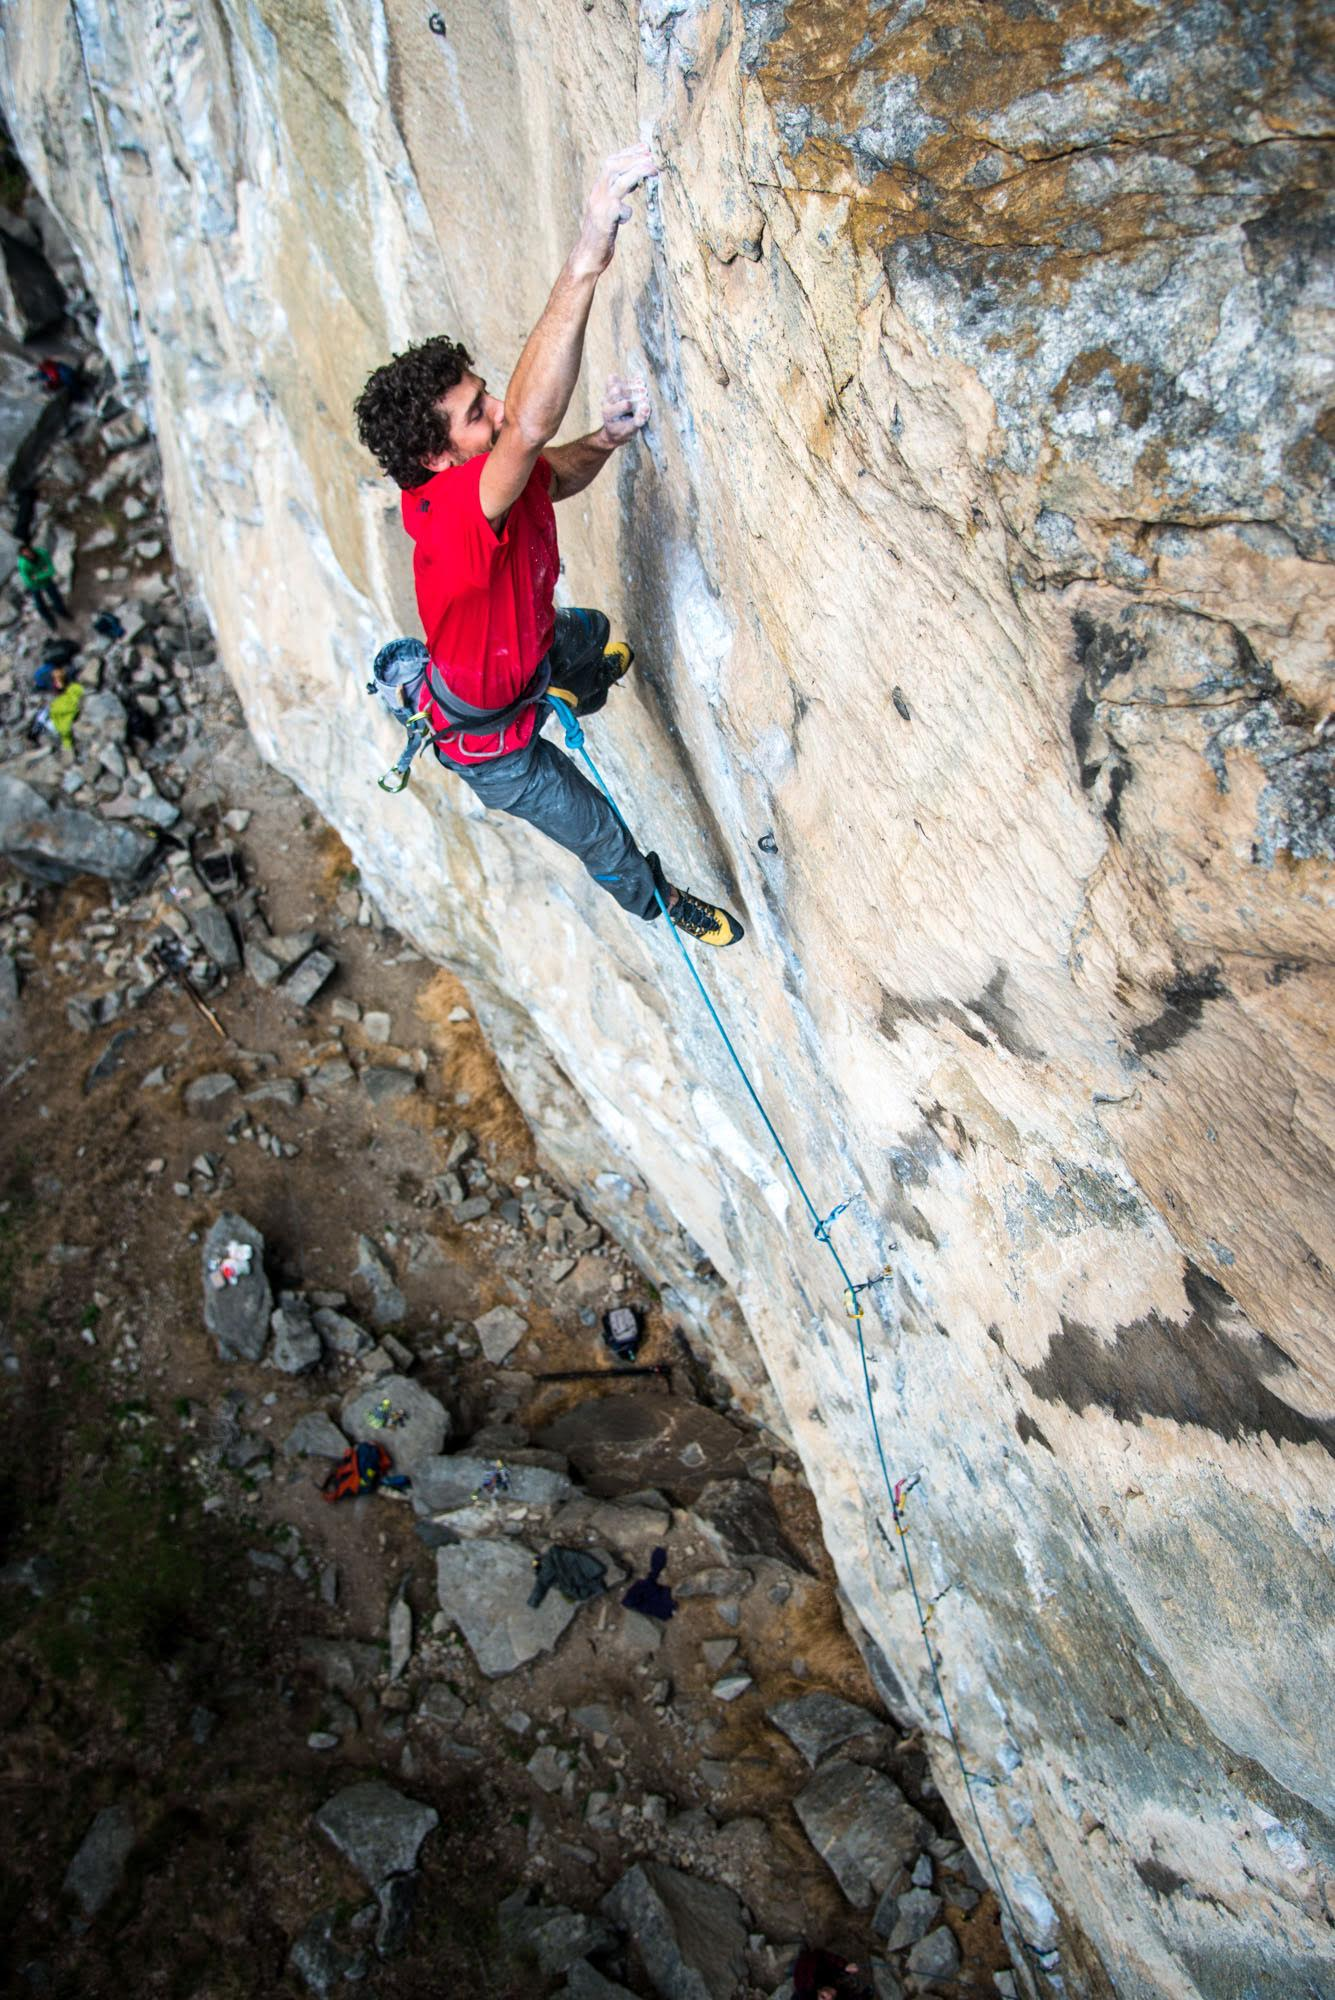 Larcher runout and mid-crux on Gondo Crack. [Photo] Richard Felderer